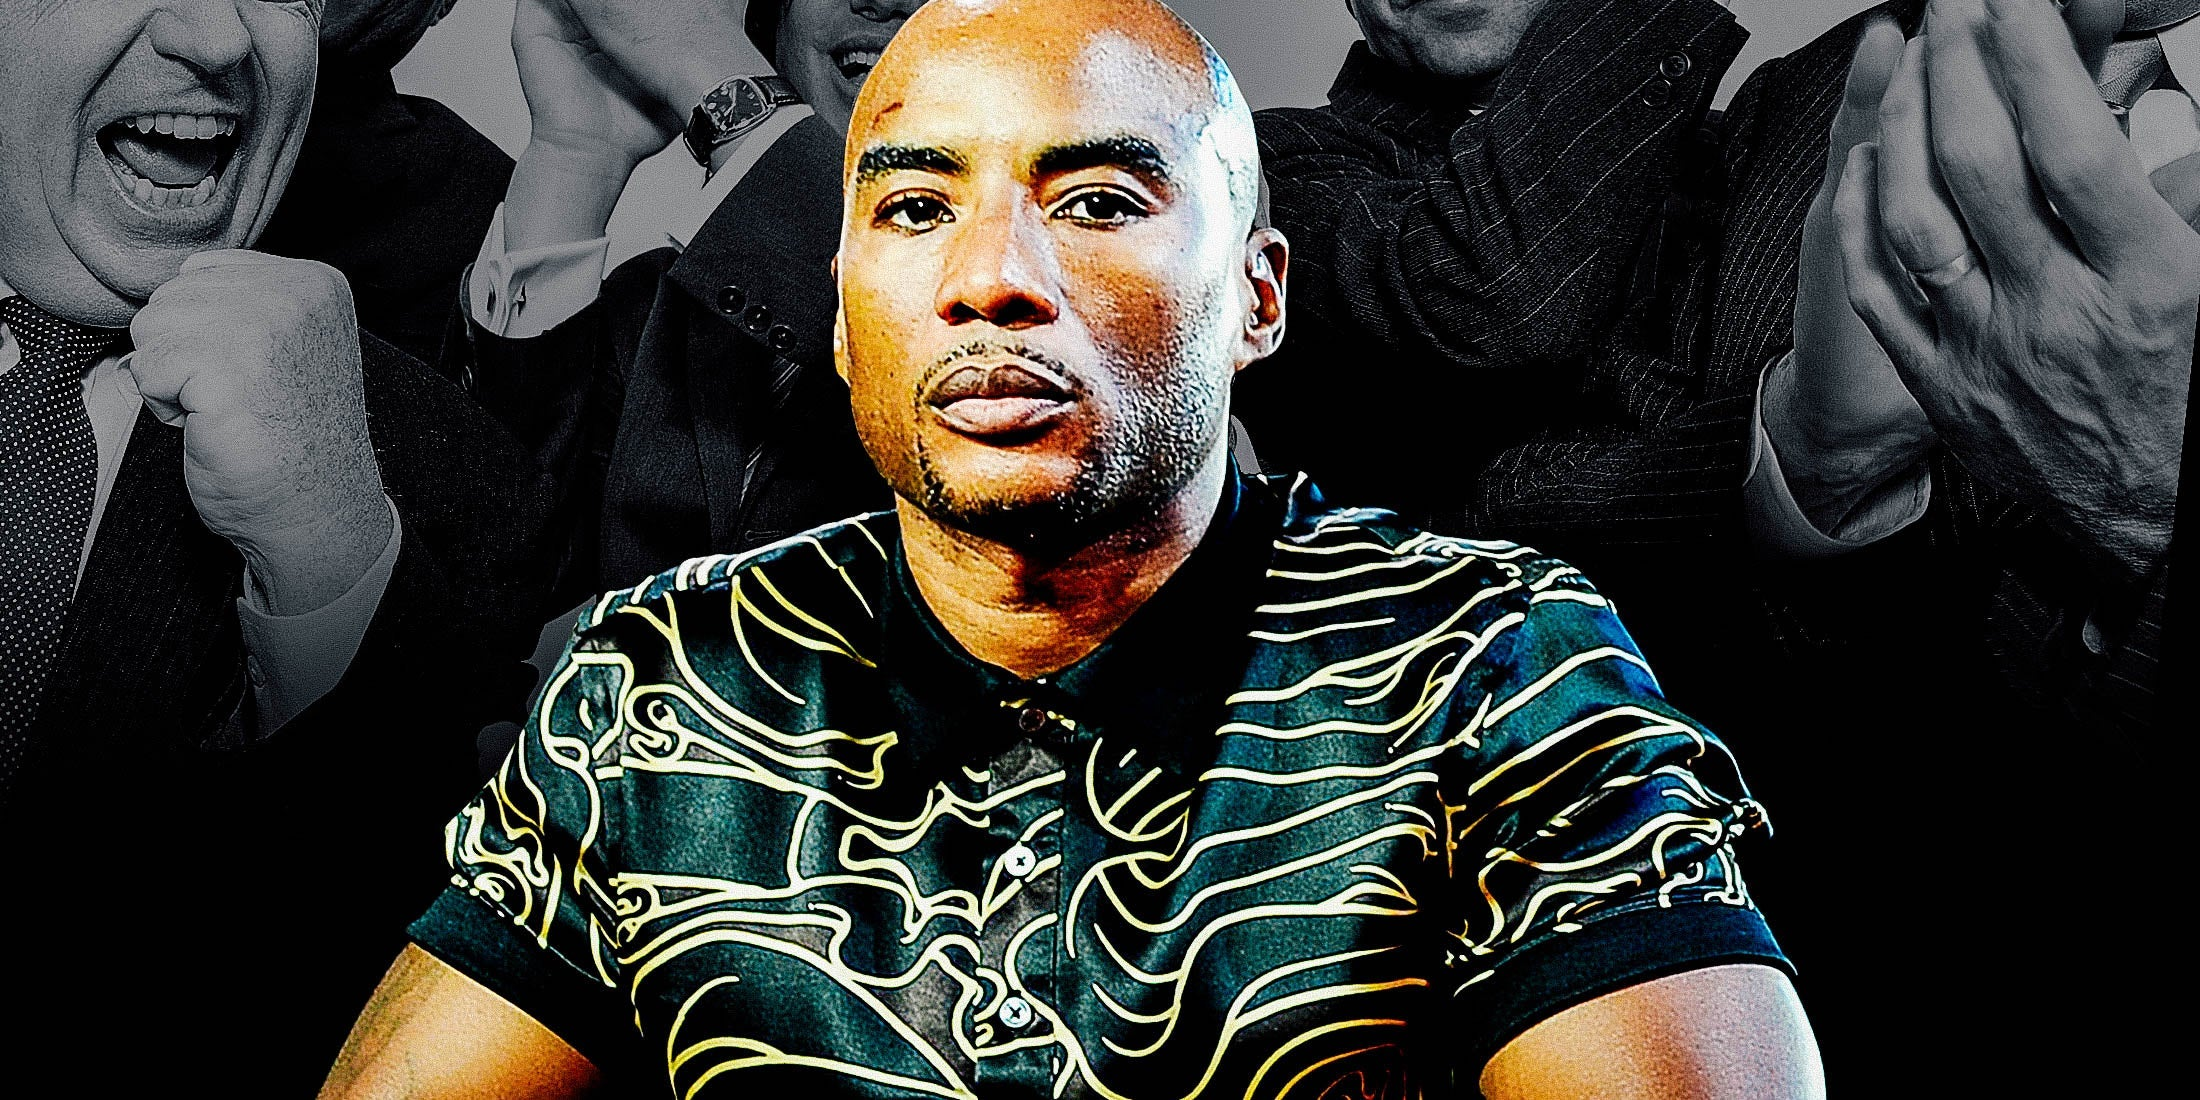 Charlamagne tha God seated, with white people in suits standing and cheering in the background